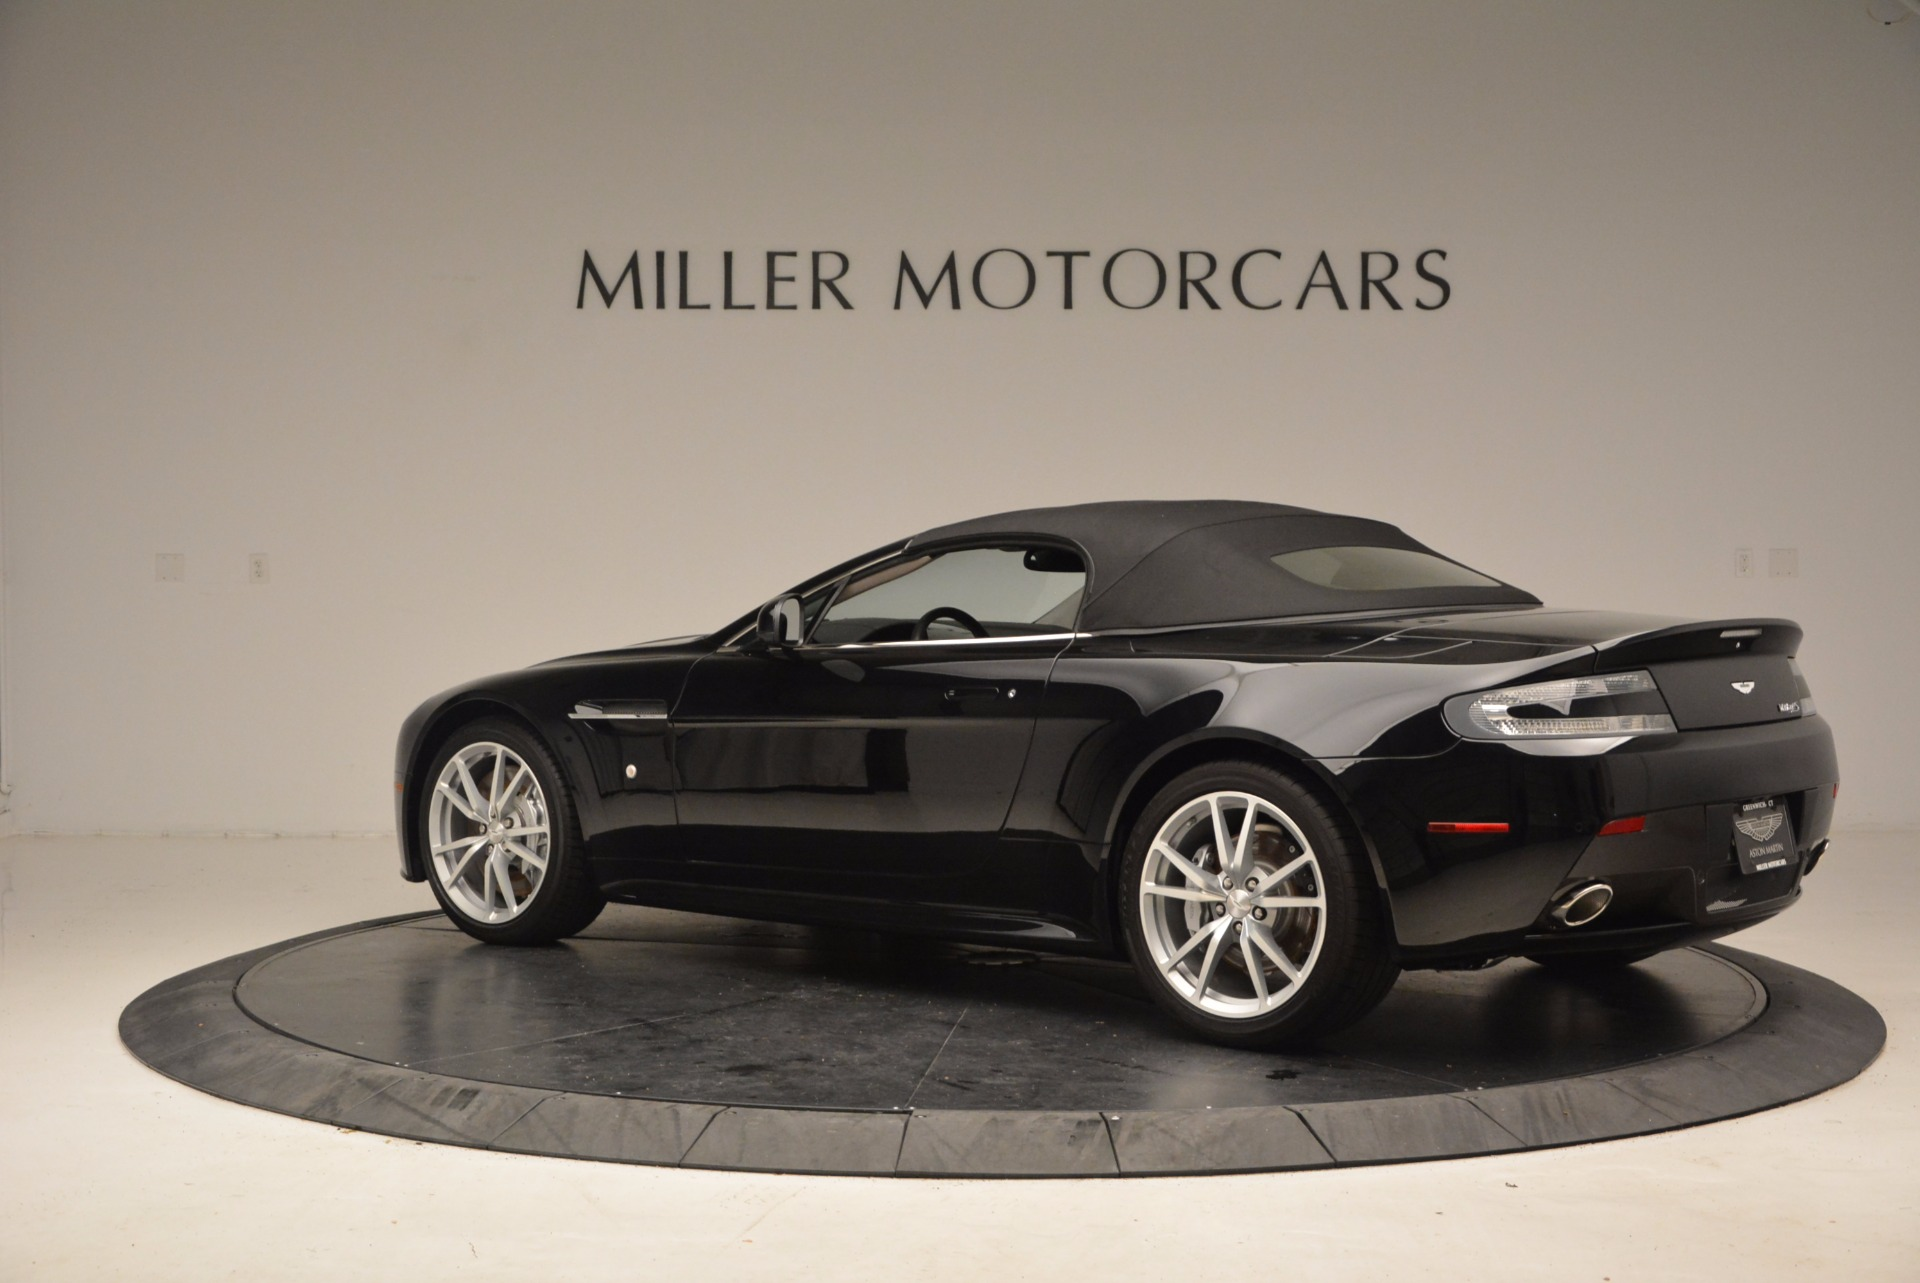 New 2016 Aston Martin V8 Vantage Roadster For Sale In Westport, CT 1546_p16